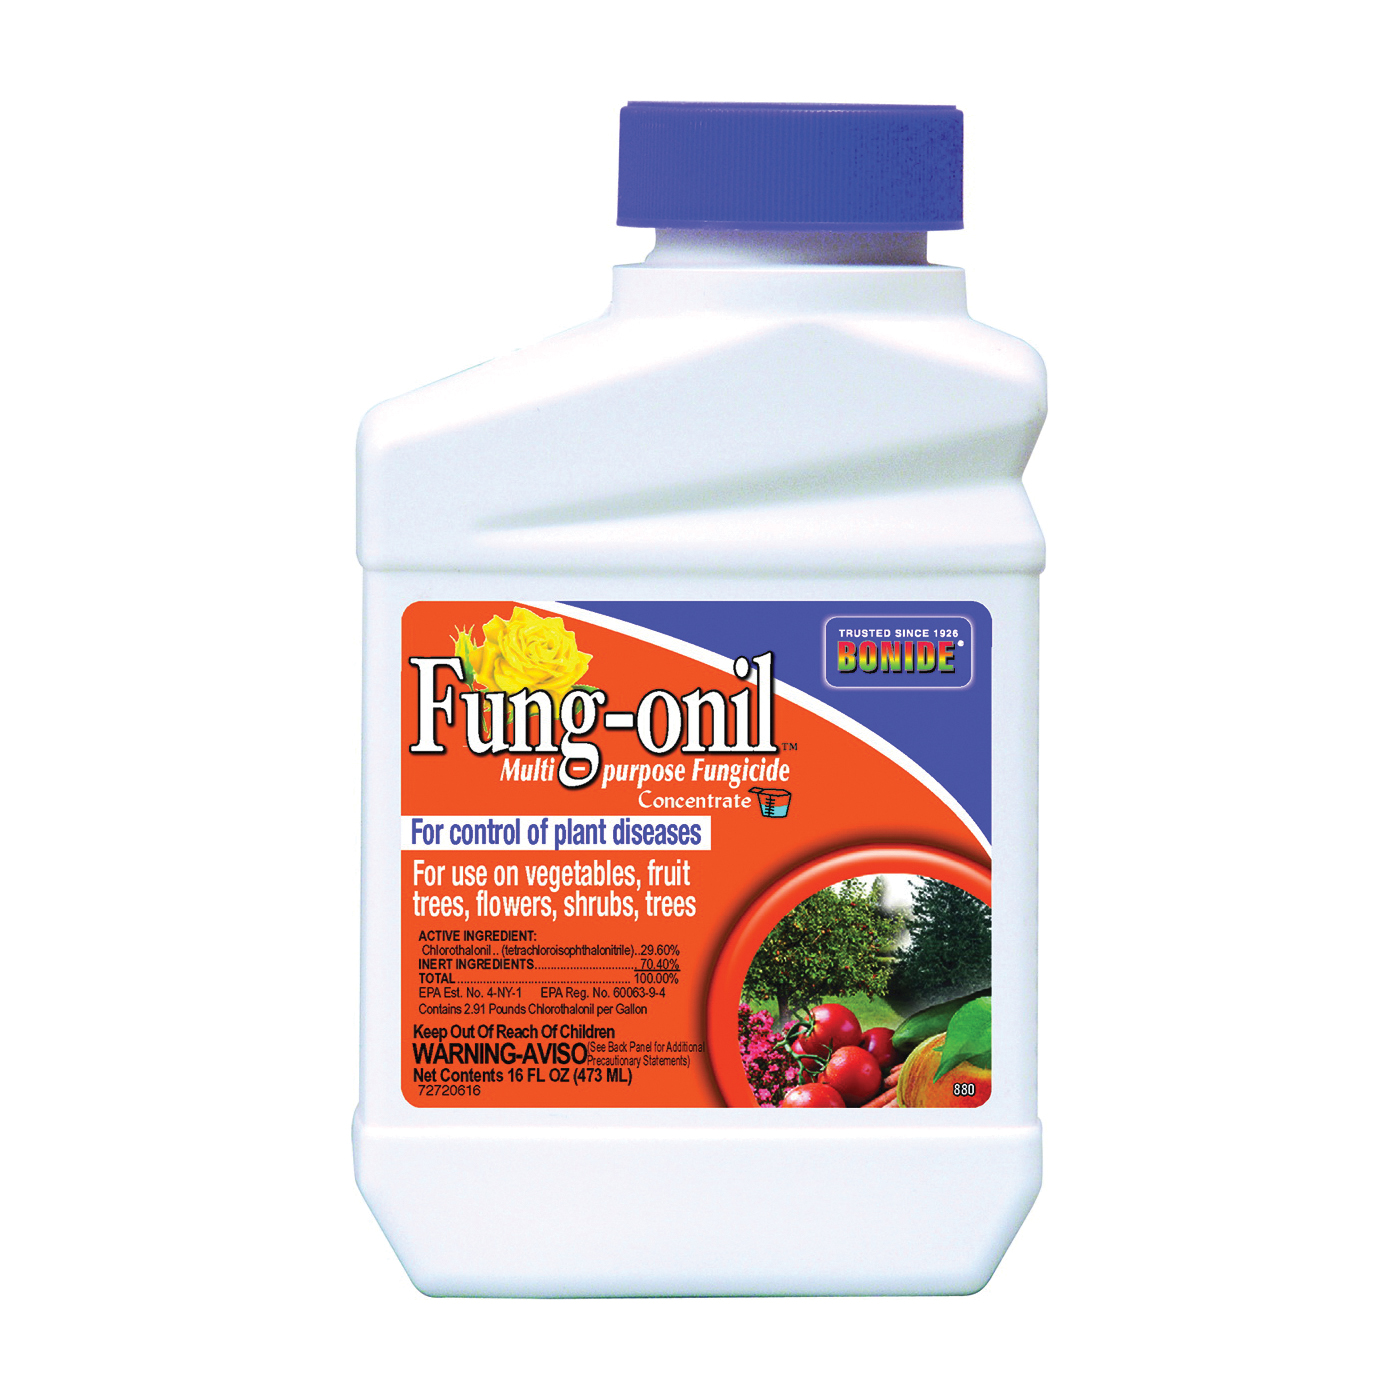 Picture of Fung-onil 880 Fungicide, Liquid, Minimal, White, 1 pt Package